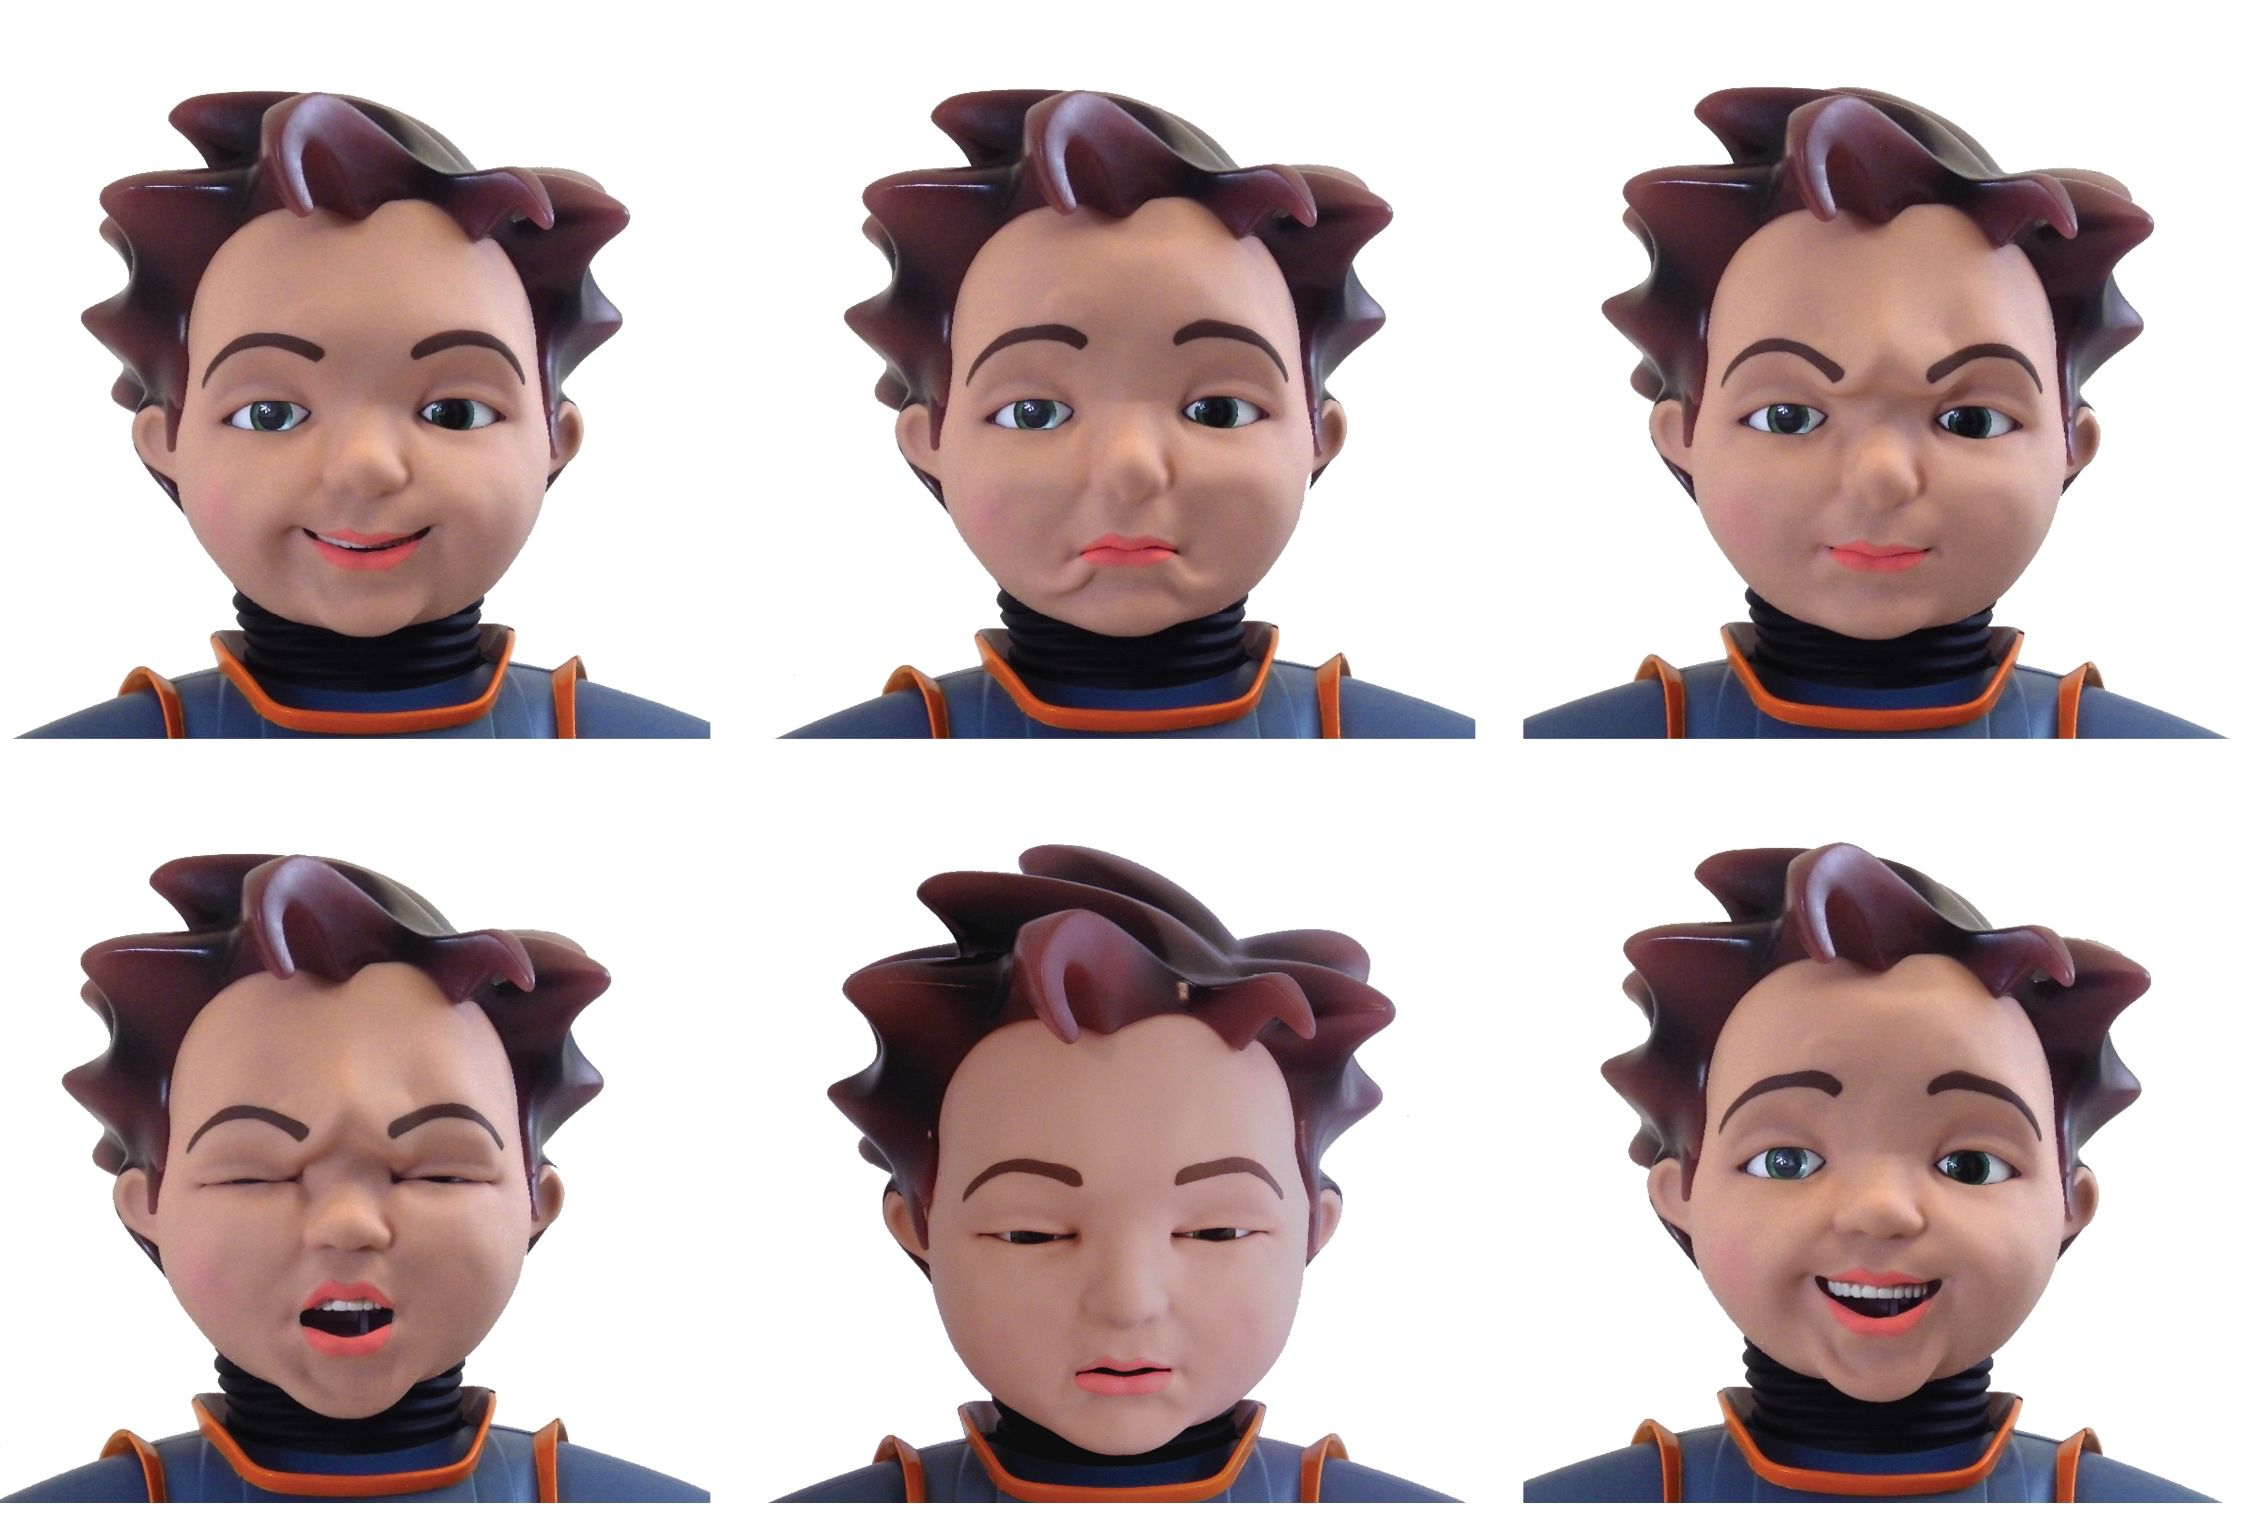 A humanoid robot, Milo makes a range of facial expressions to help autistic children identify human emotions.